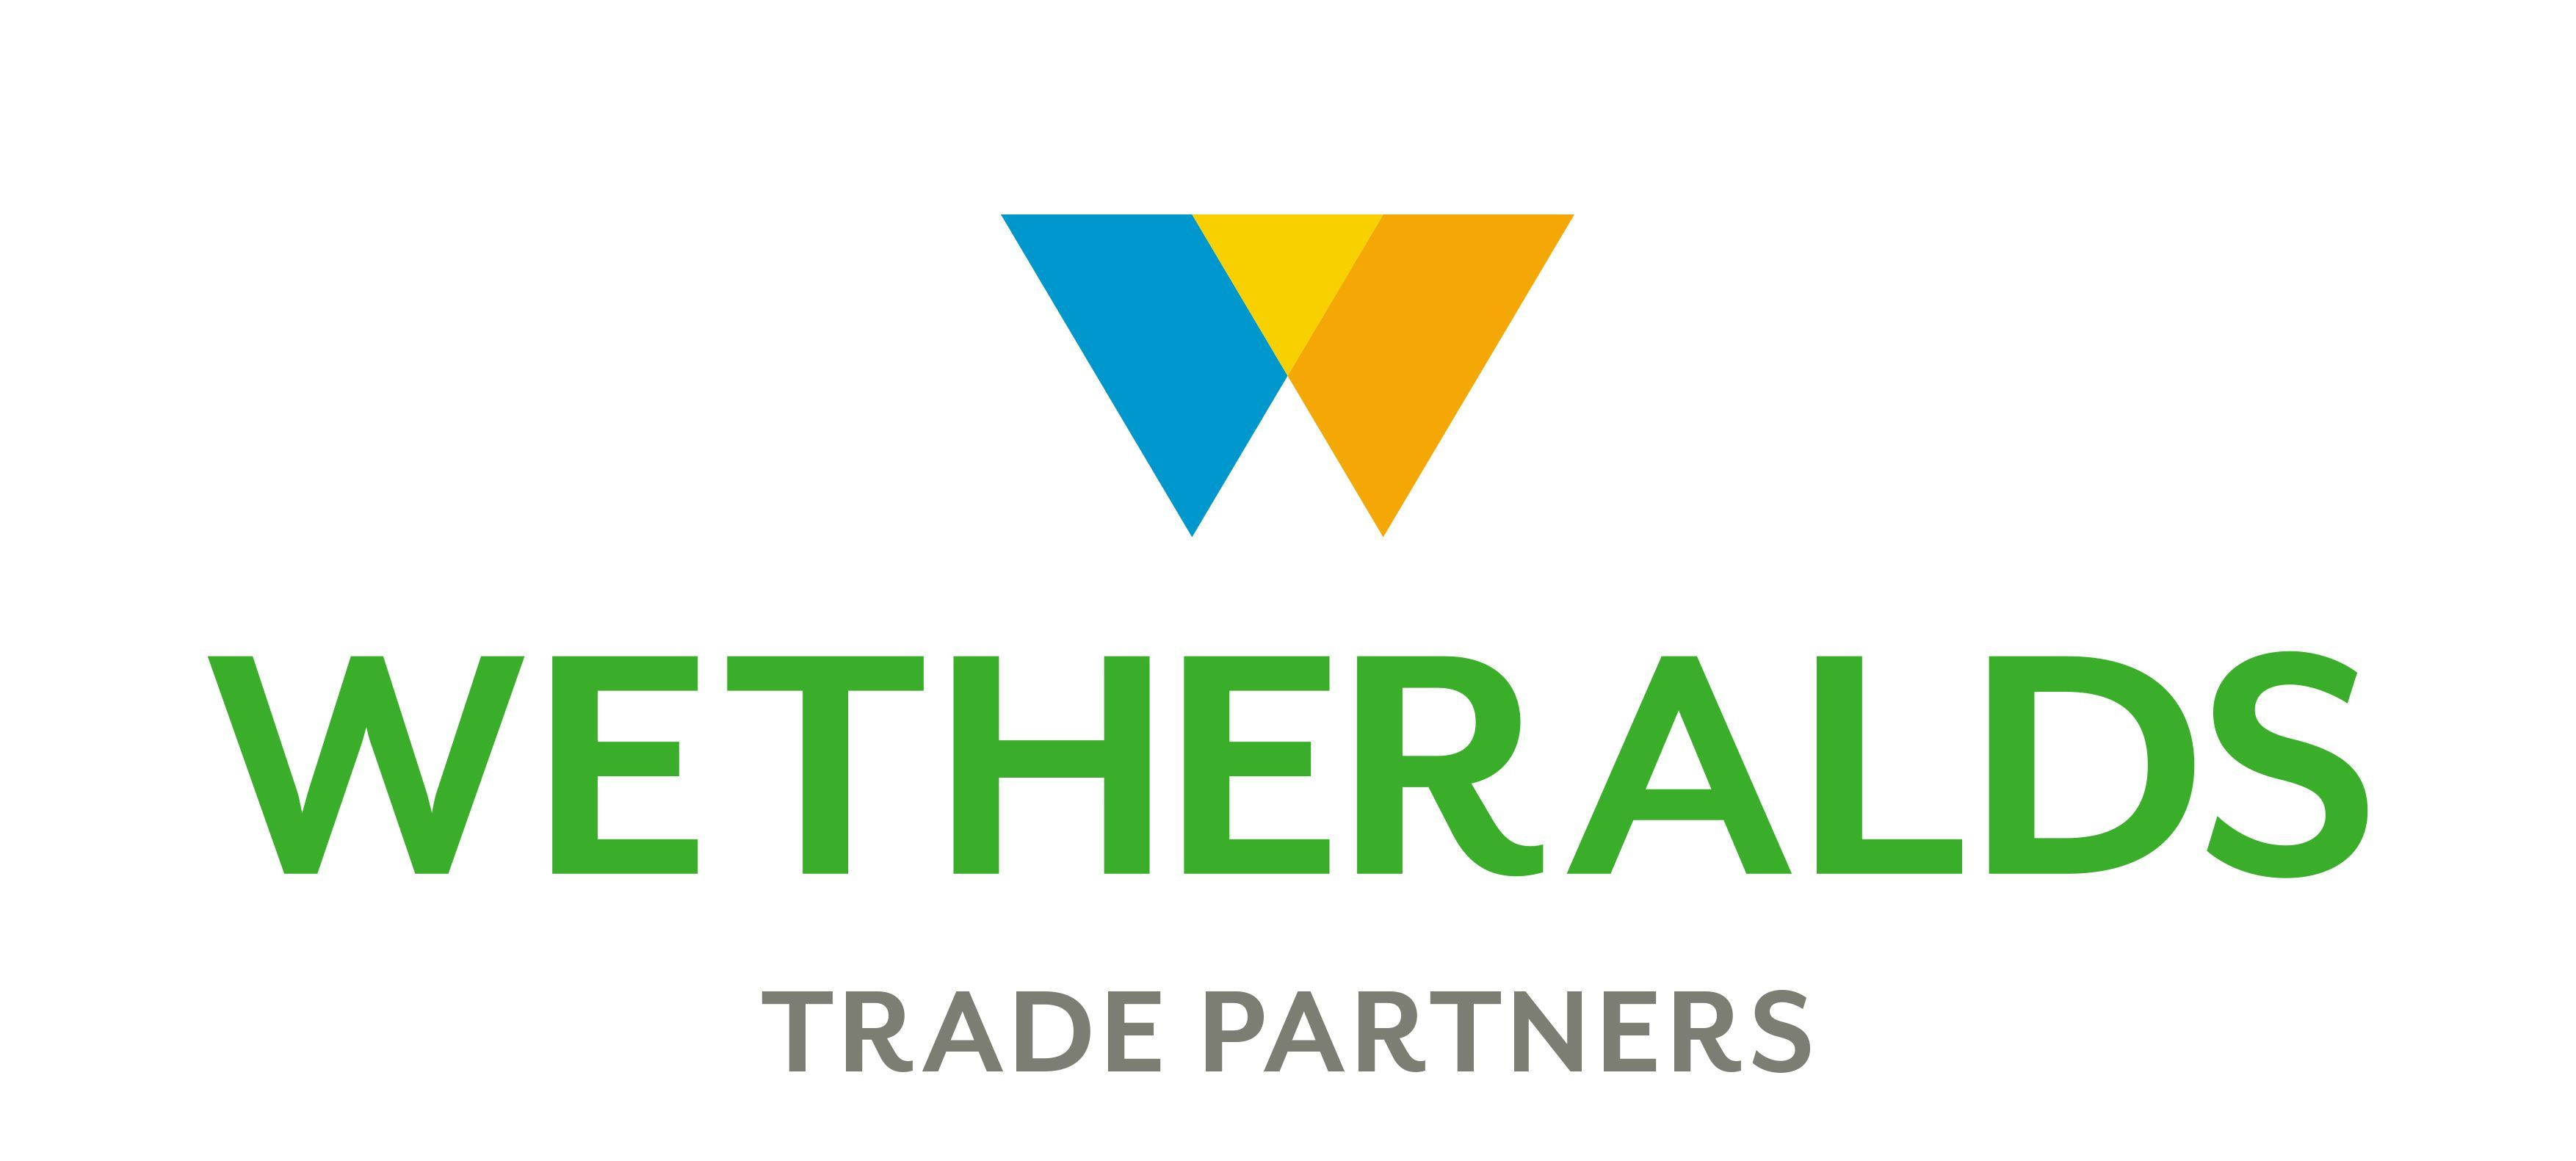 Wetheralds trade partners